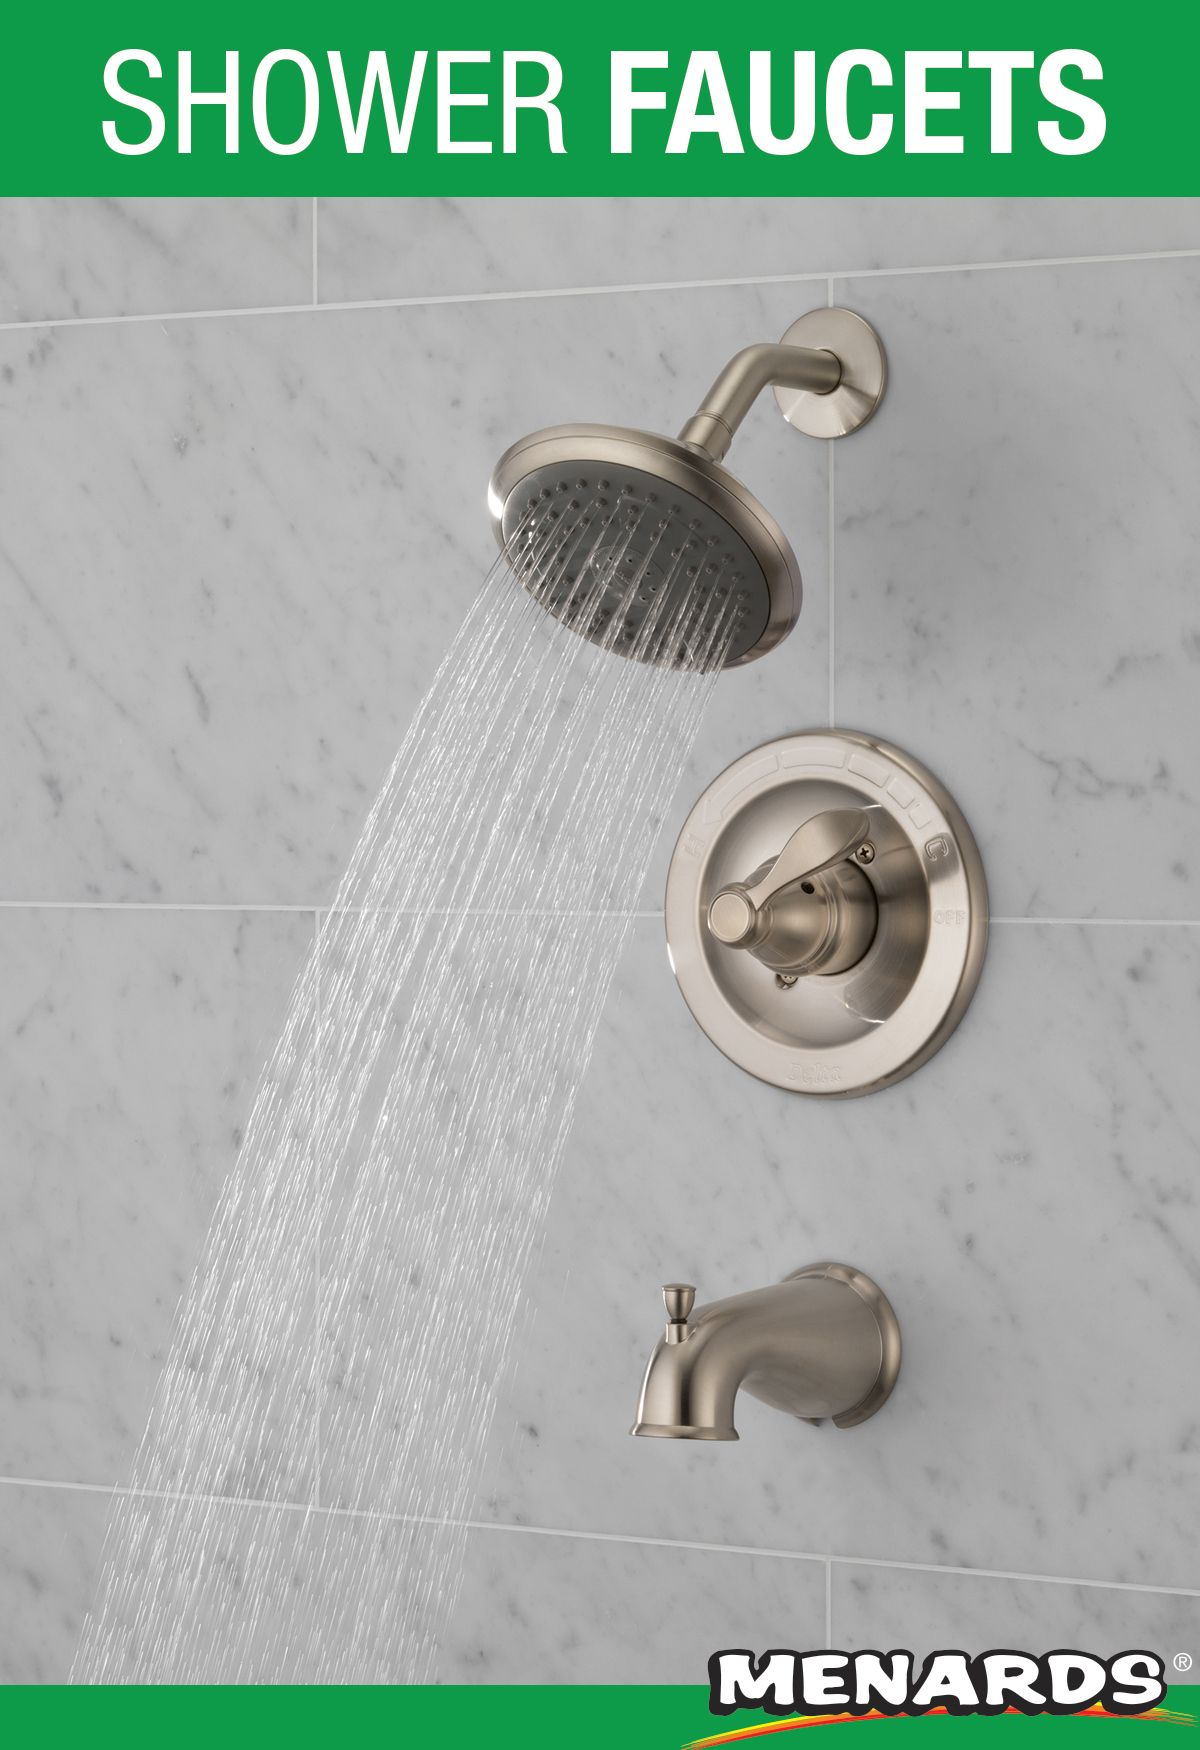 Refresh Your Bathroom And Enjoy A Relaxing Shower With This Delta